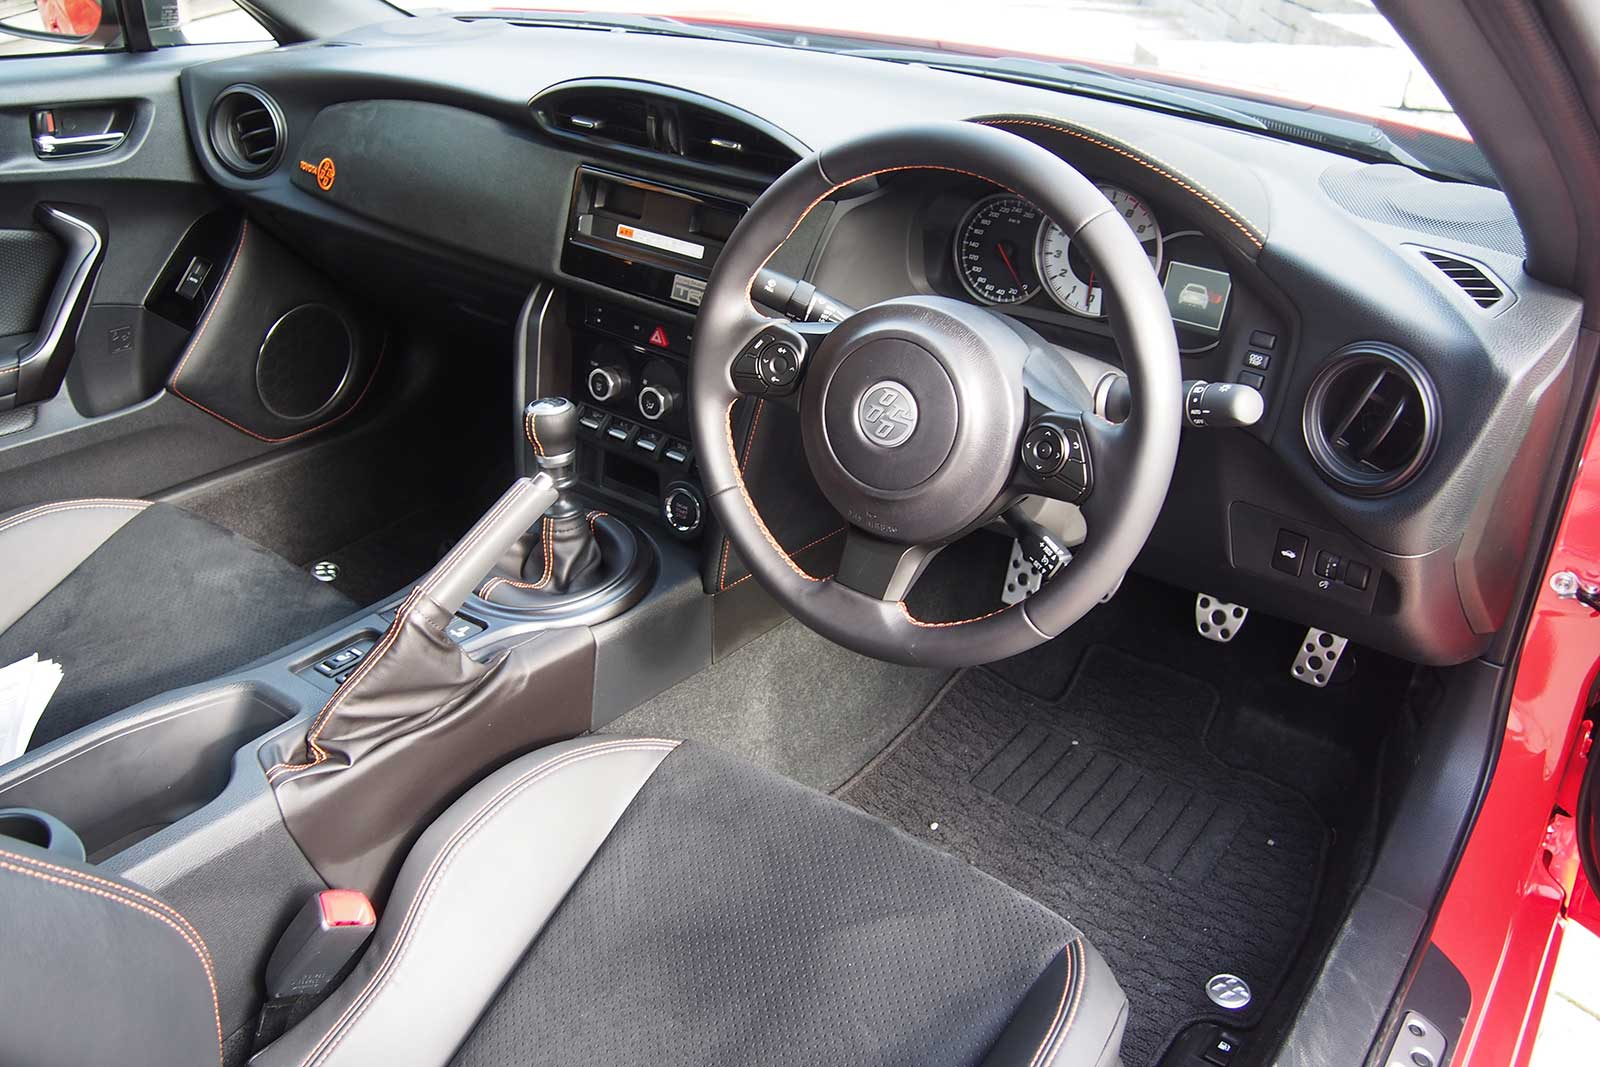 Toyota GT86 860 Special Edition (13)